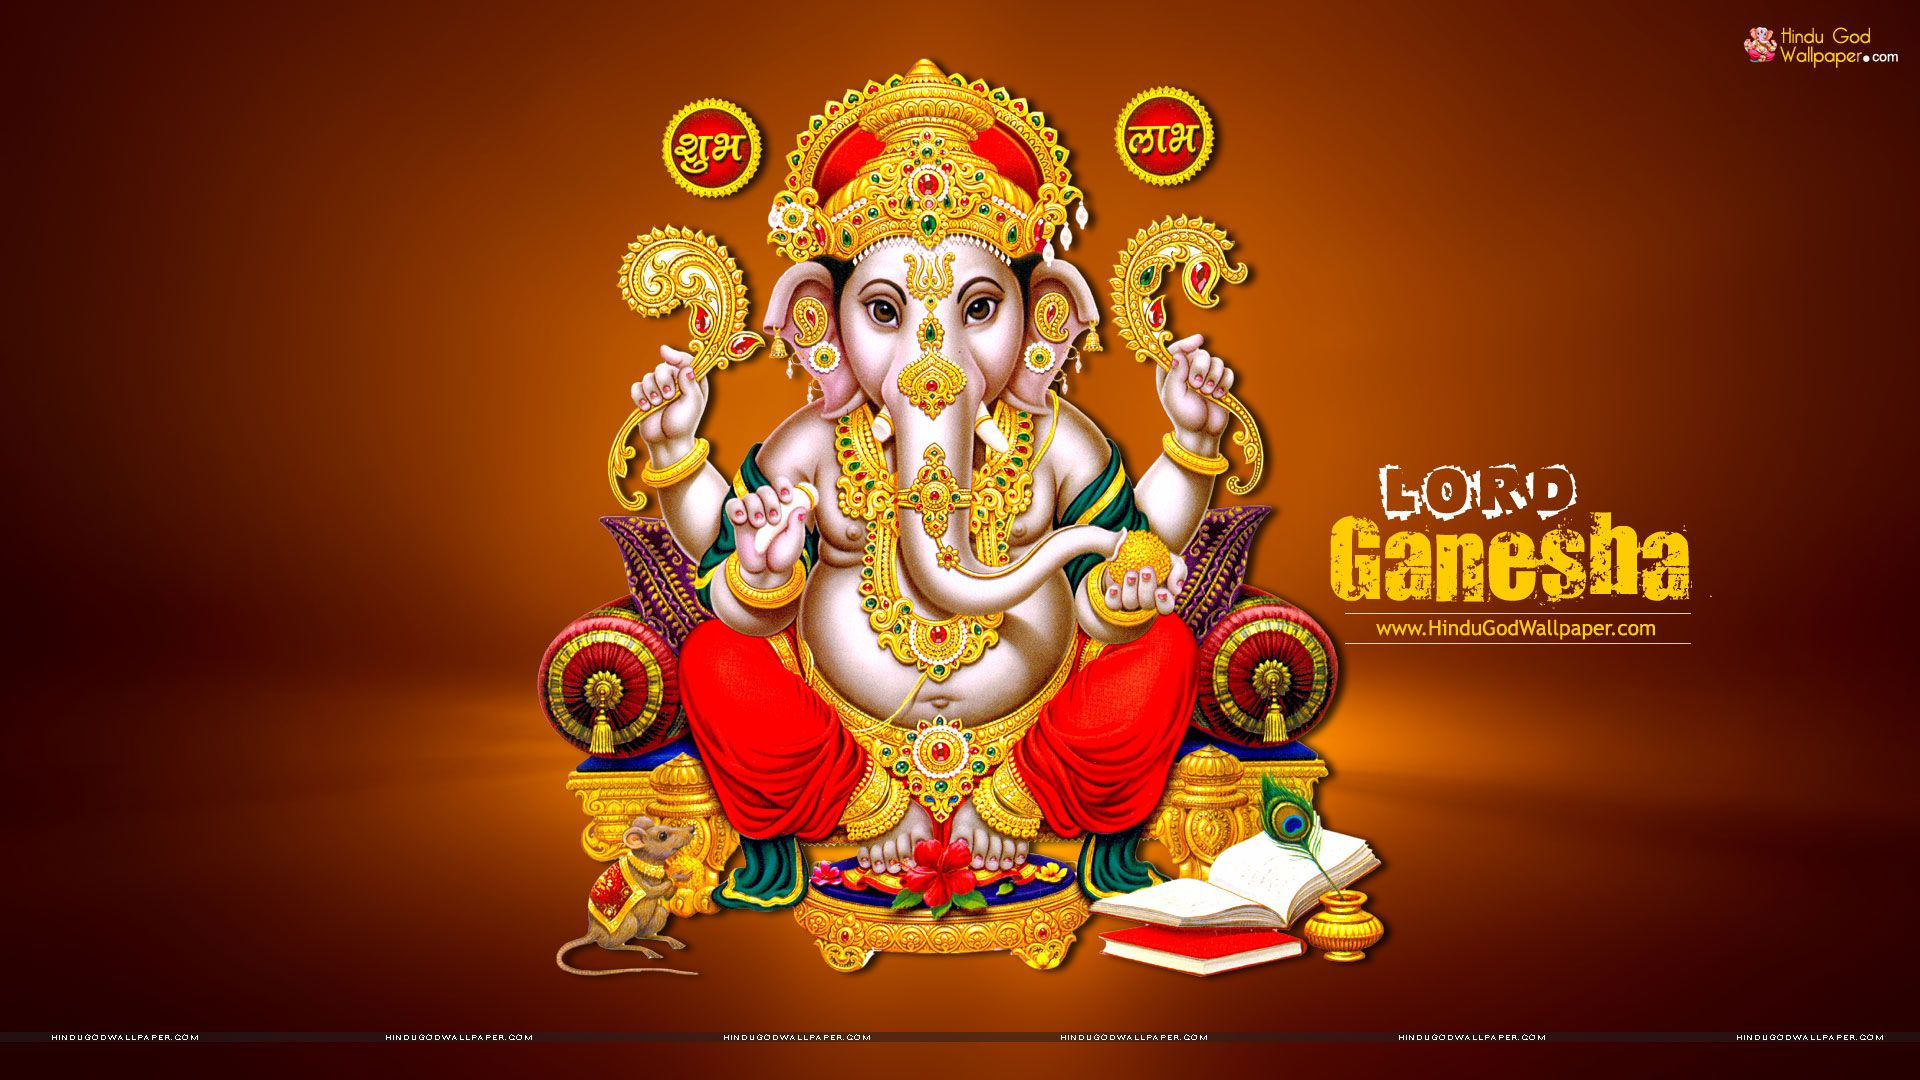 Lord Ganesha Wallpaper 1920x1080 Hd Wallpapers 1080p Lord Best